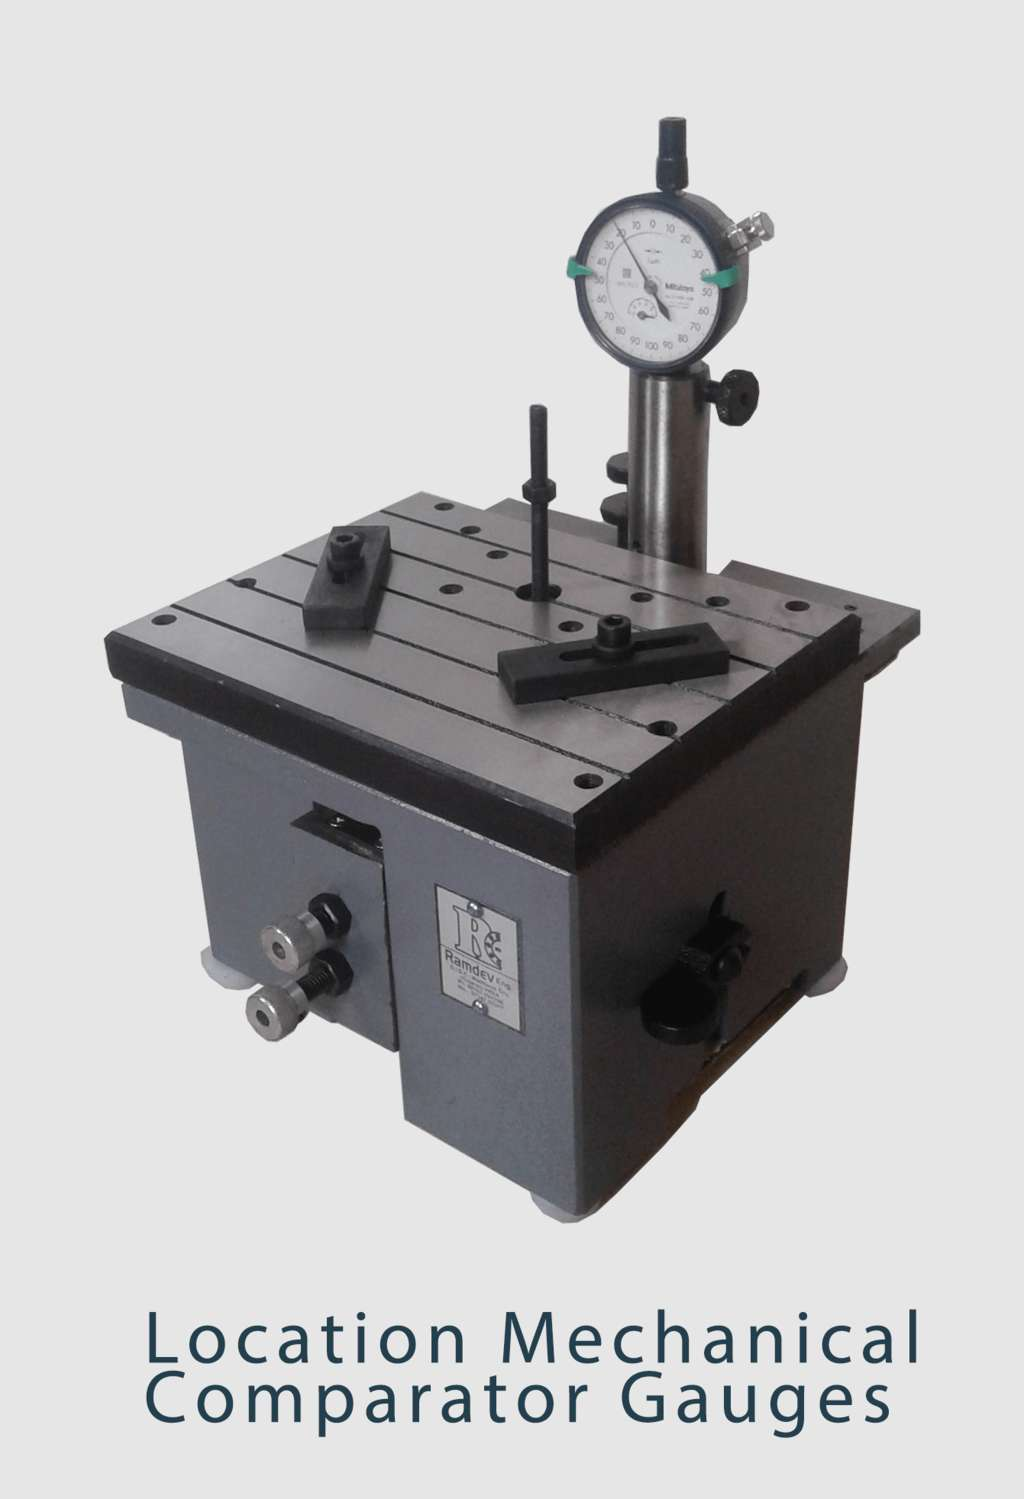 Location Mechanical Comparator Gauges